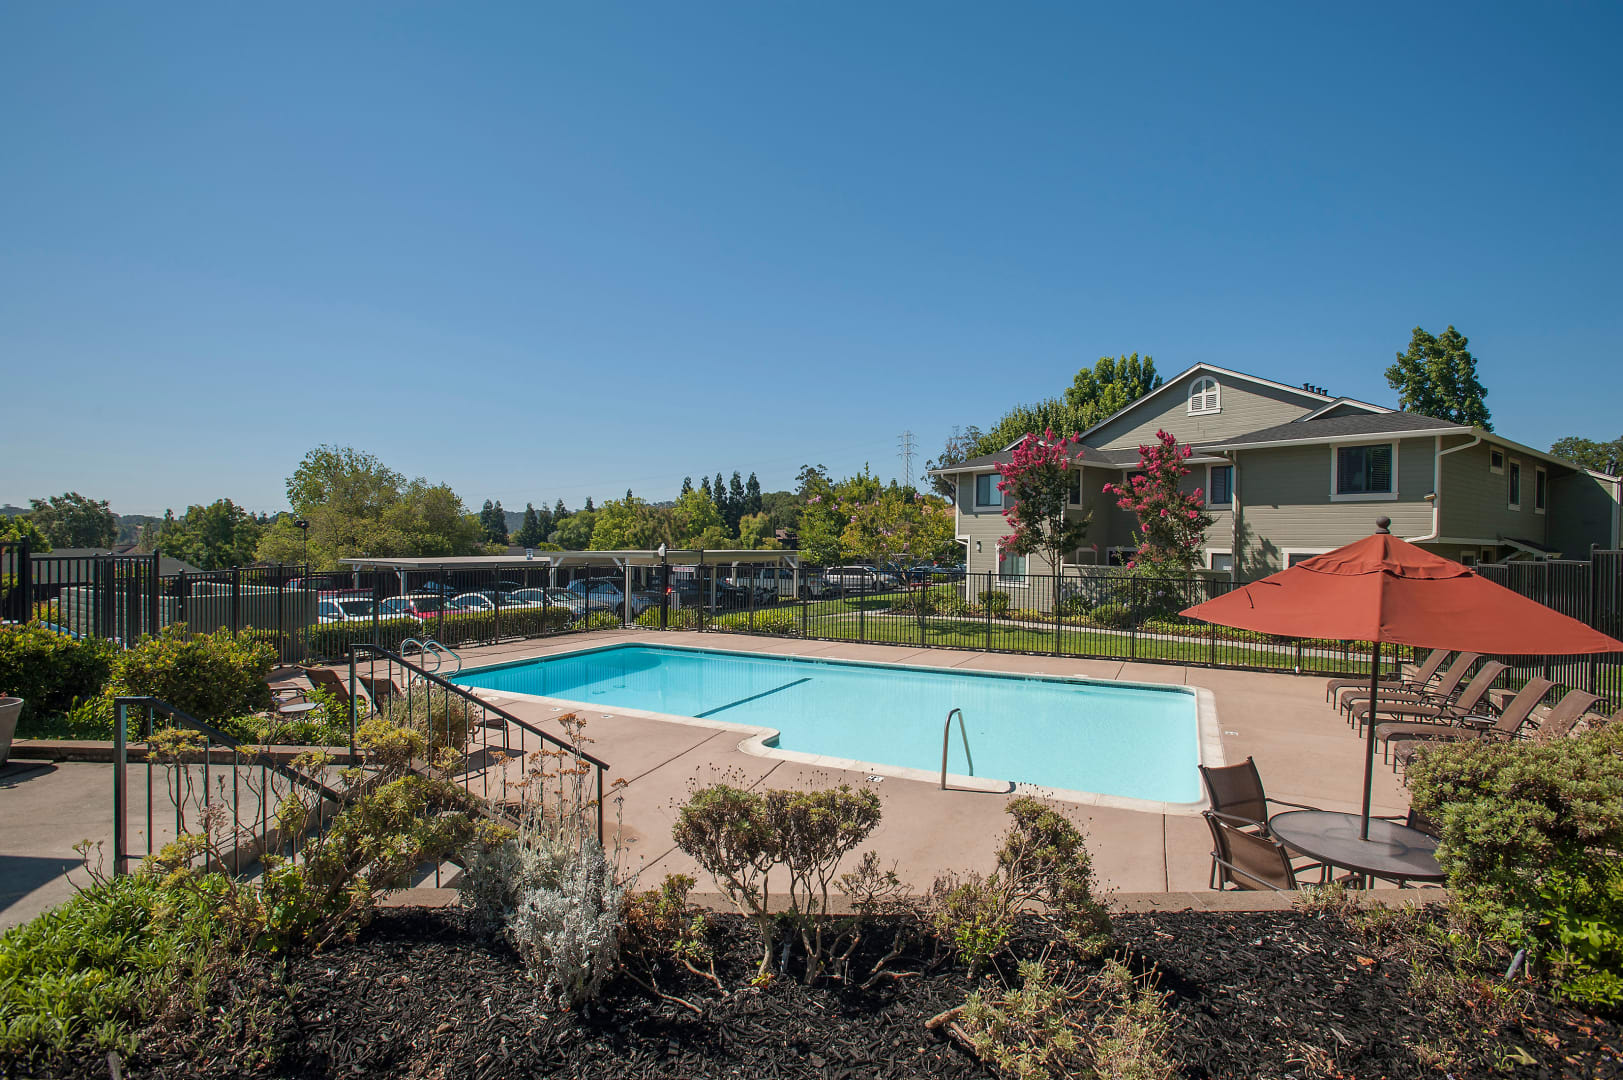 View photos of our luxurious property at Ridgecrest Apartment Homes in Martinez, CA